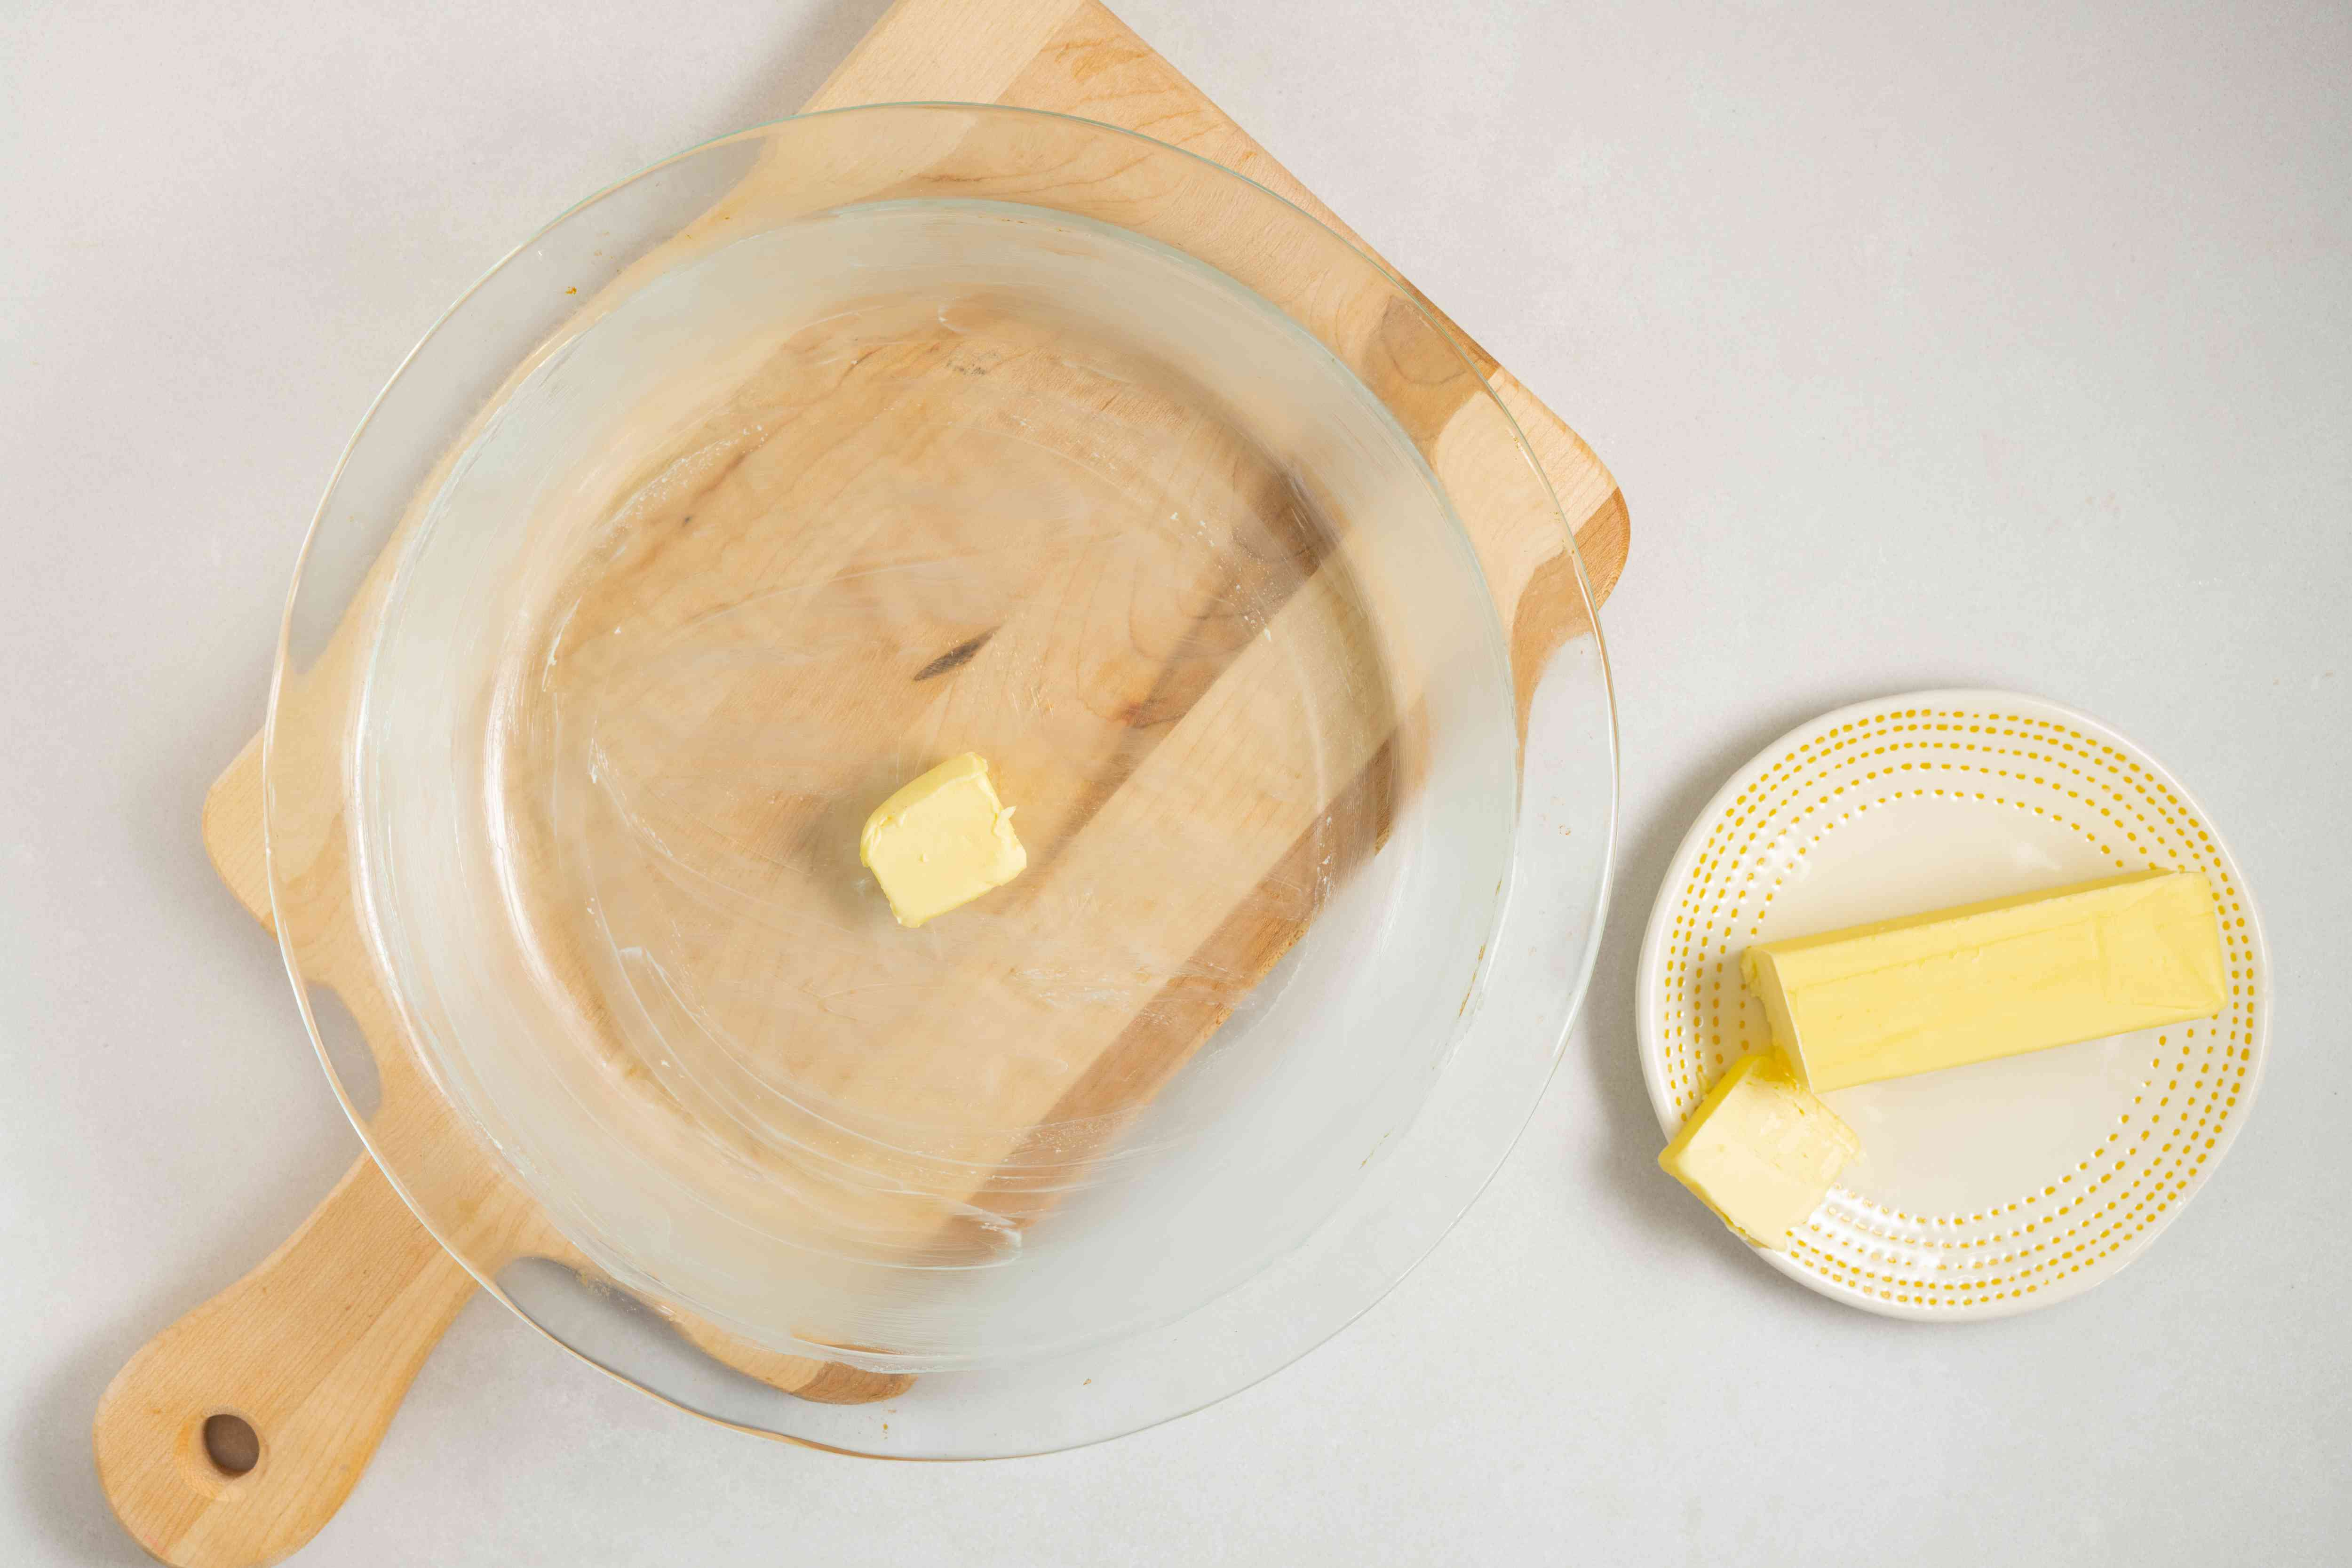 Grease a 10-inch pie plate well with dairy-free soy margarine